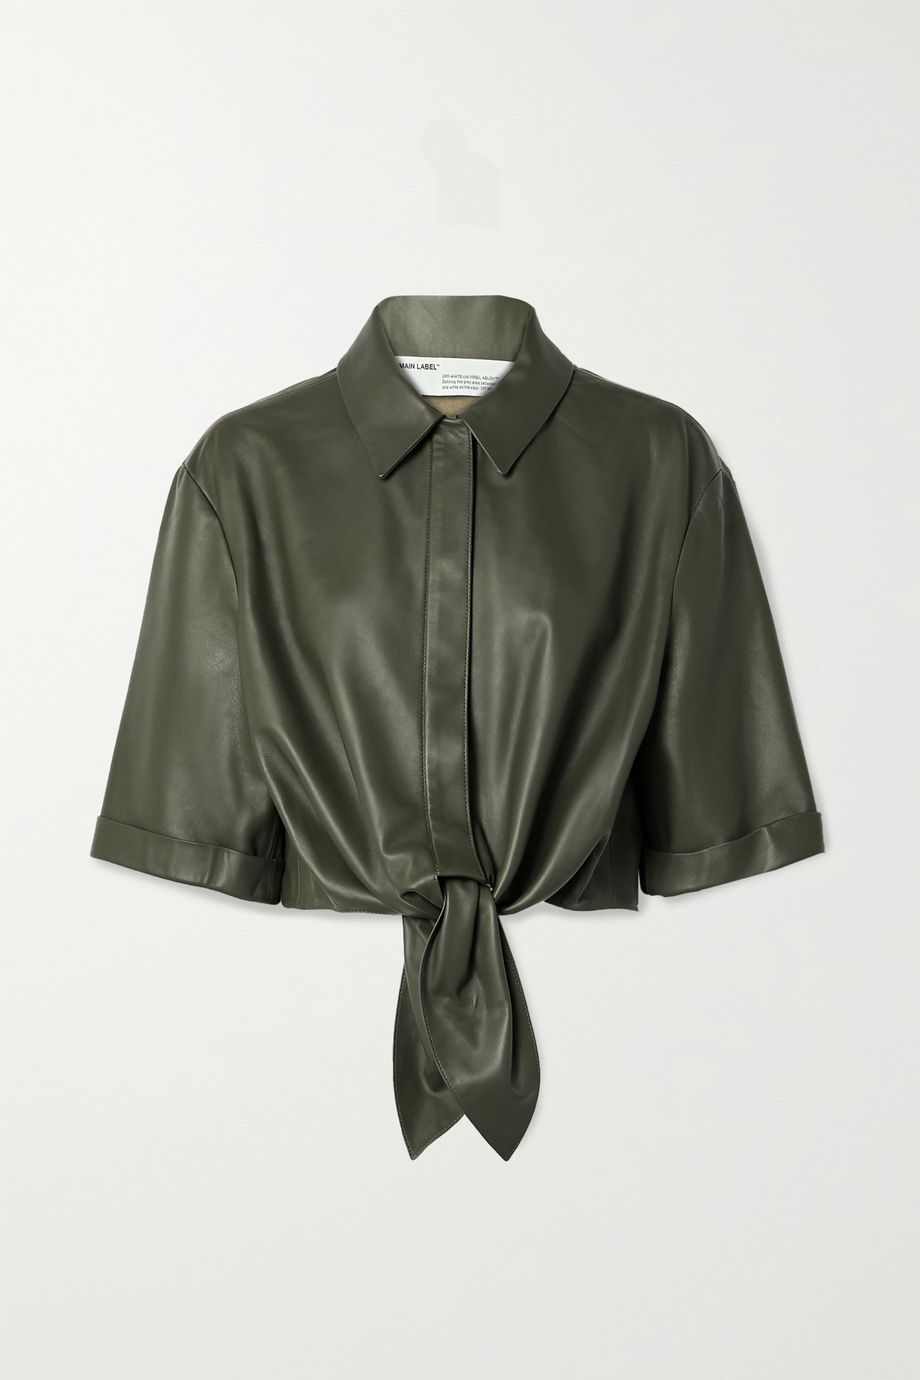 Off-White Tie-front leather shirt